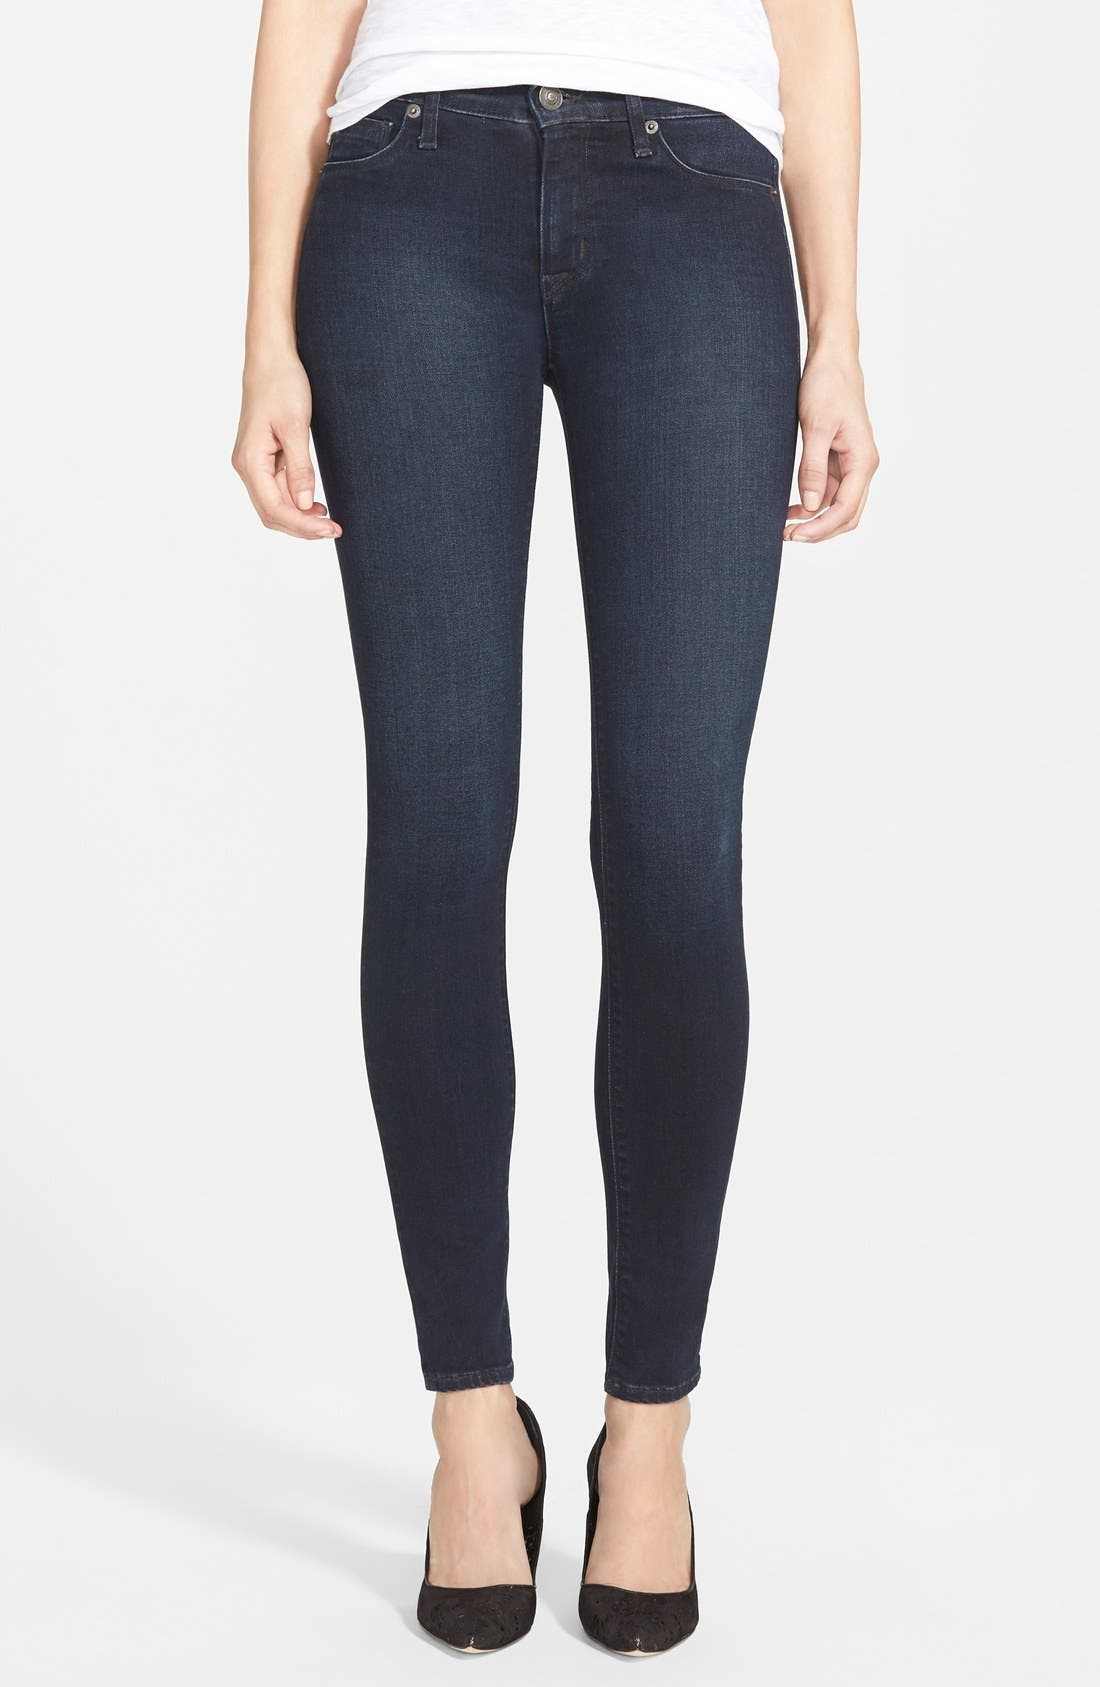 Alternate Image 1 Selected - Hudson Jeans 'Nico' Skinny Jeans (Front And Center)